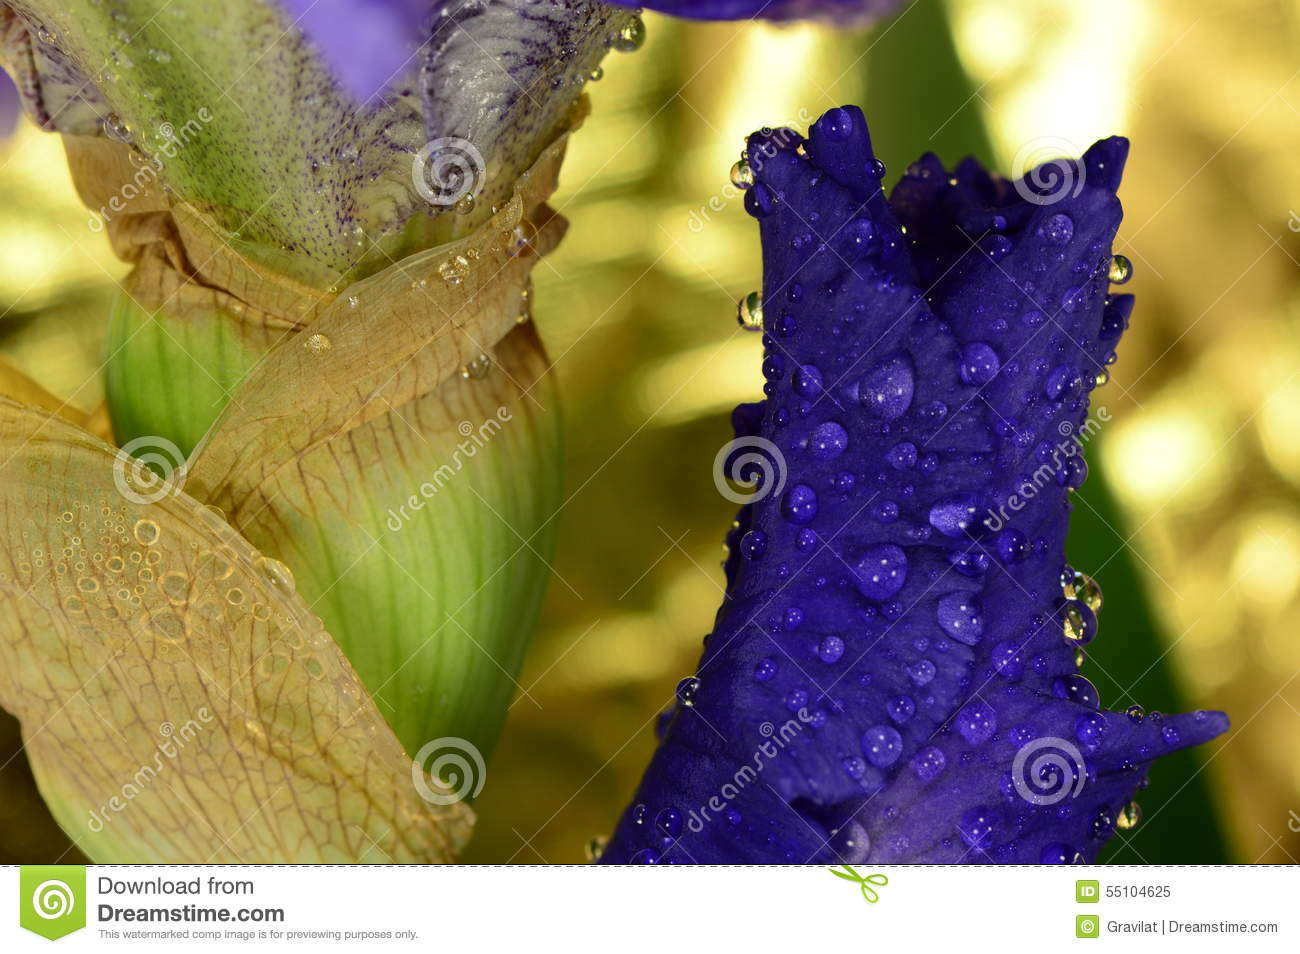 The flower iris stock image image of detail background 55104625 the flower iris detail background izmirmasajfo Choice Image